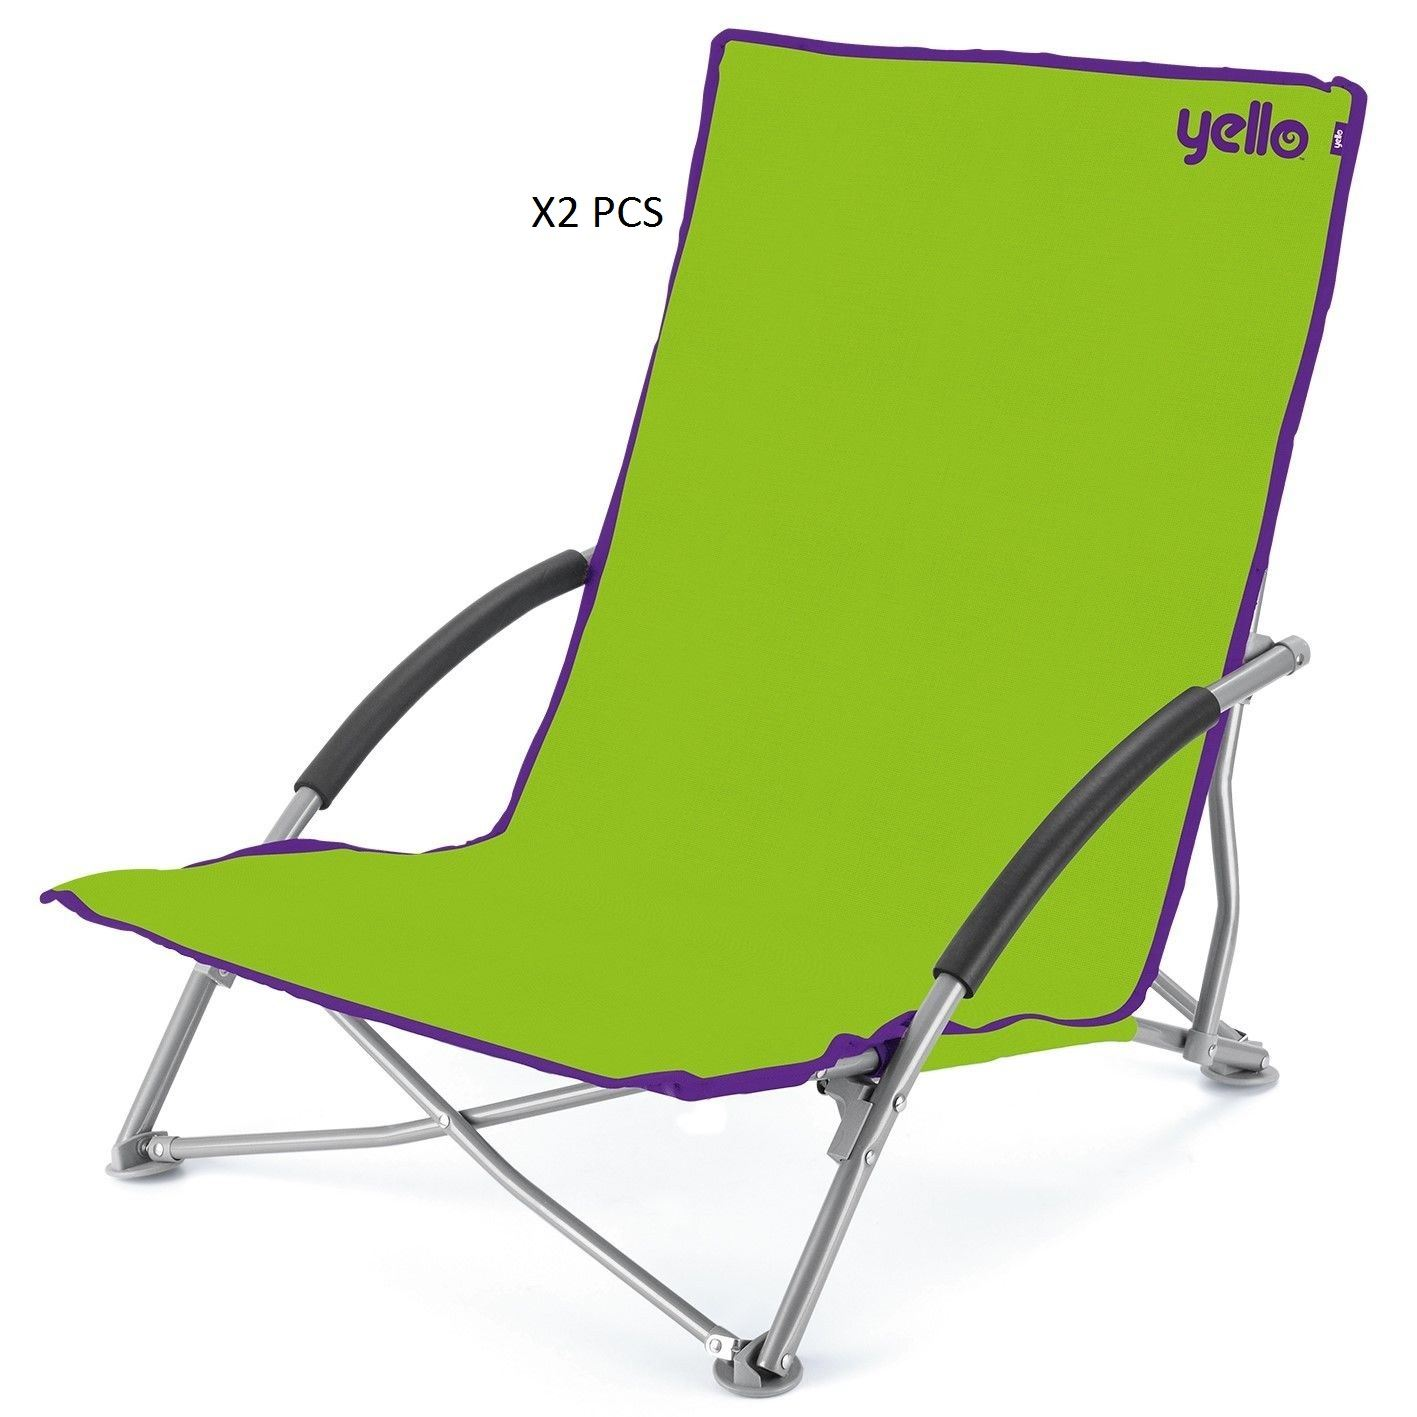 X2 Heavy duty folding camping directors chair with Foam arms in